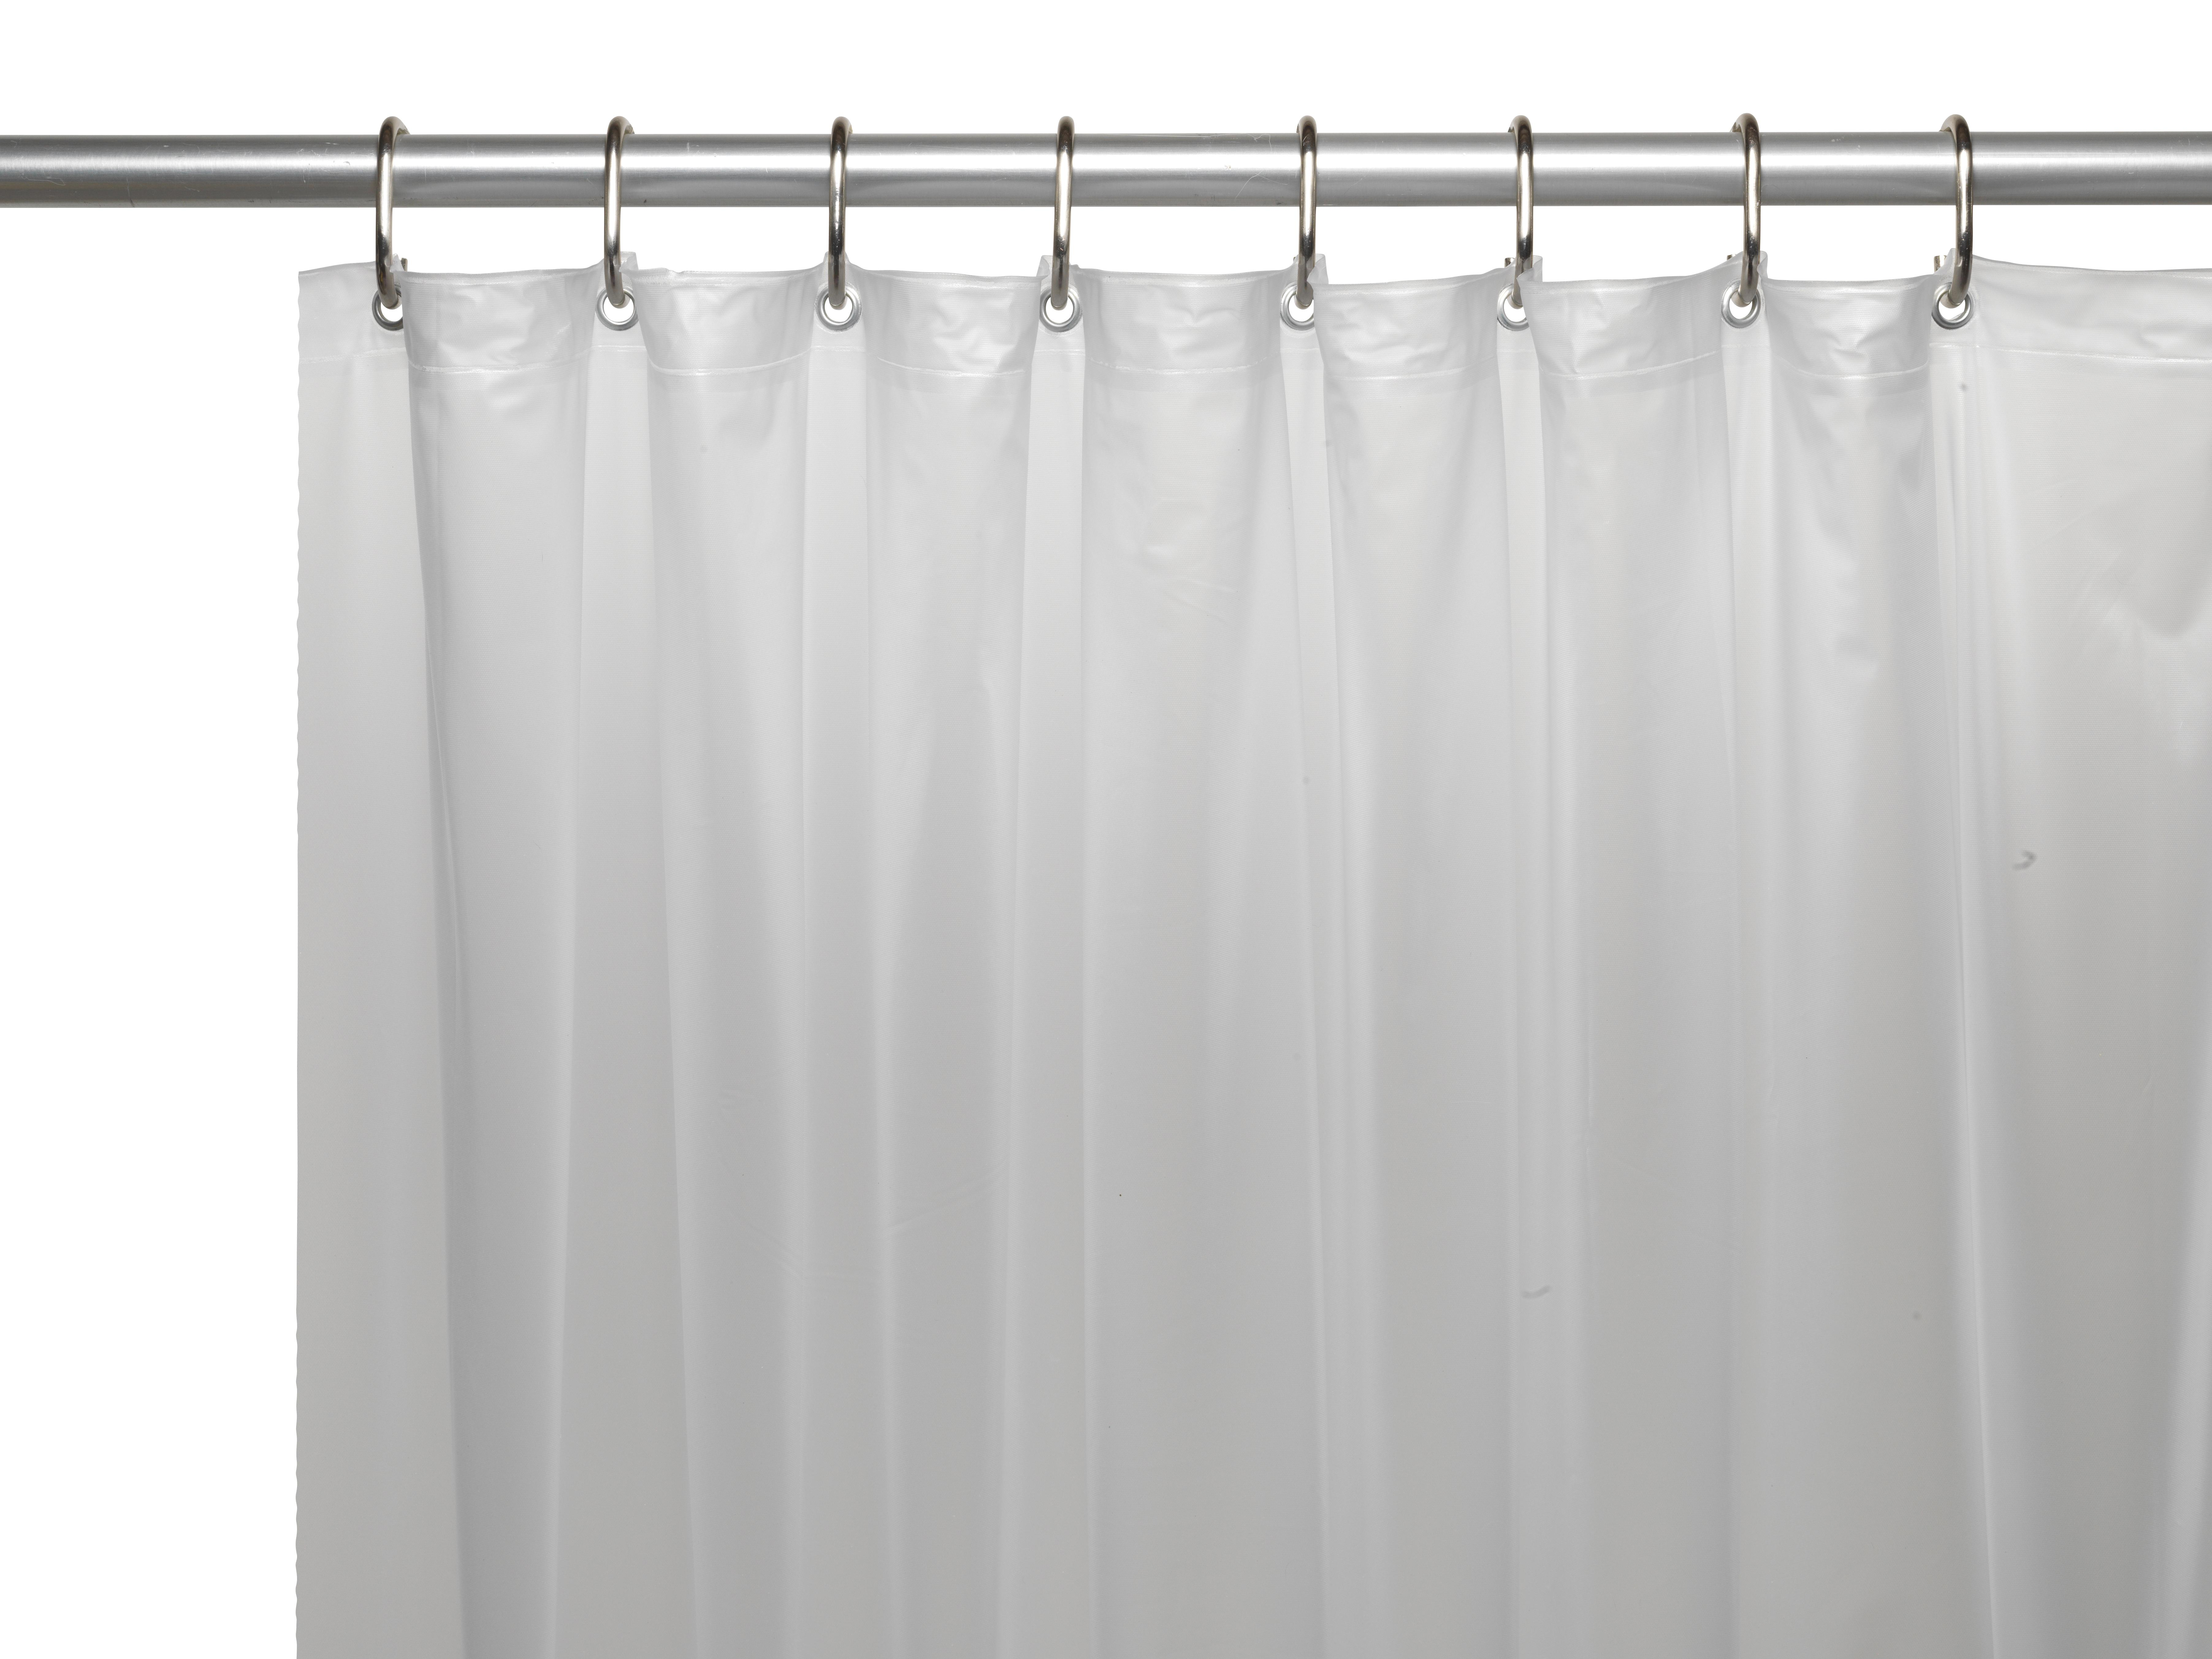 Extra long 70 x 84 mildew resistant 10 gauge vinyl shower curtain liner w metal grommets and reinforced mesh header in frosty clear